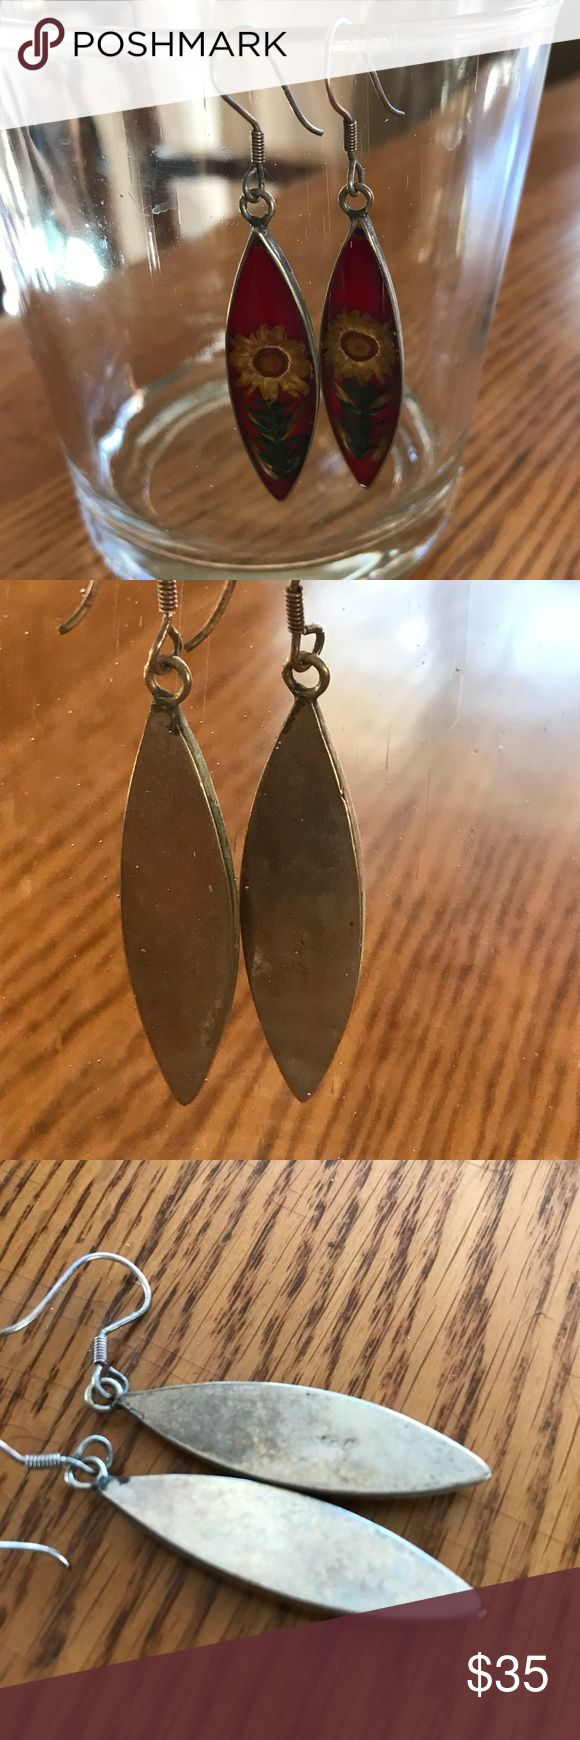 """💯STERLING HANDCRAFTED FLORAL INLAY EARRINGS 2"""" dangling length. SS and do boho pretty down to earth 🌏 earrings! Pressed flowers set inside. I'm not sure how! Any questions please ask! No trades! Offers welcome and remember to bundle for additional savings! Tx for browsing! Marian🌹 Jewelry Earrings"""